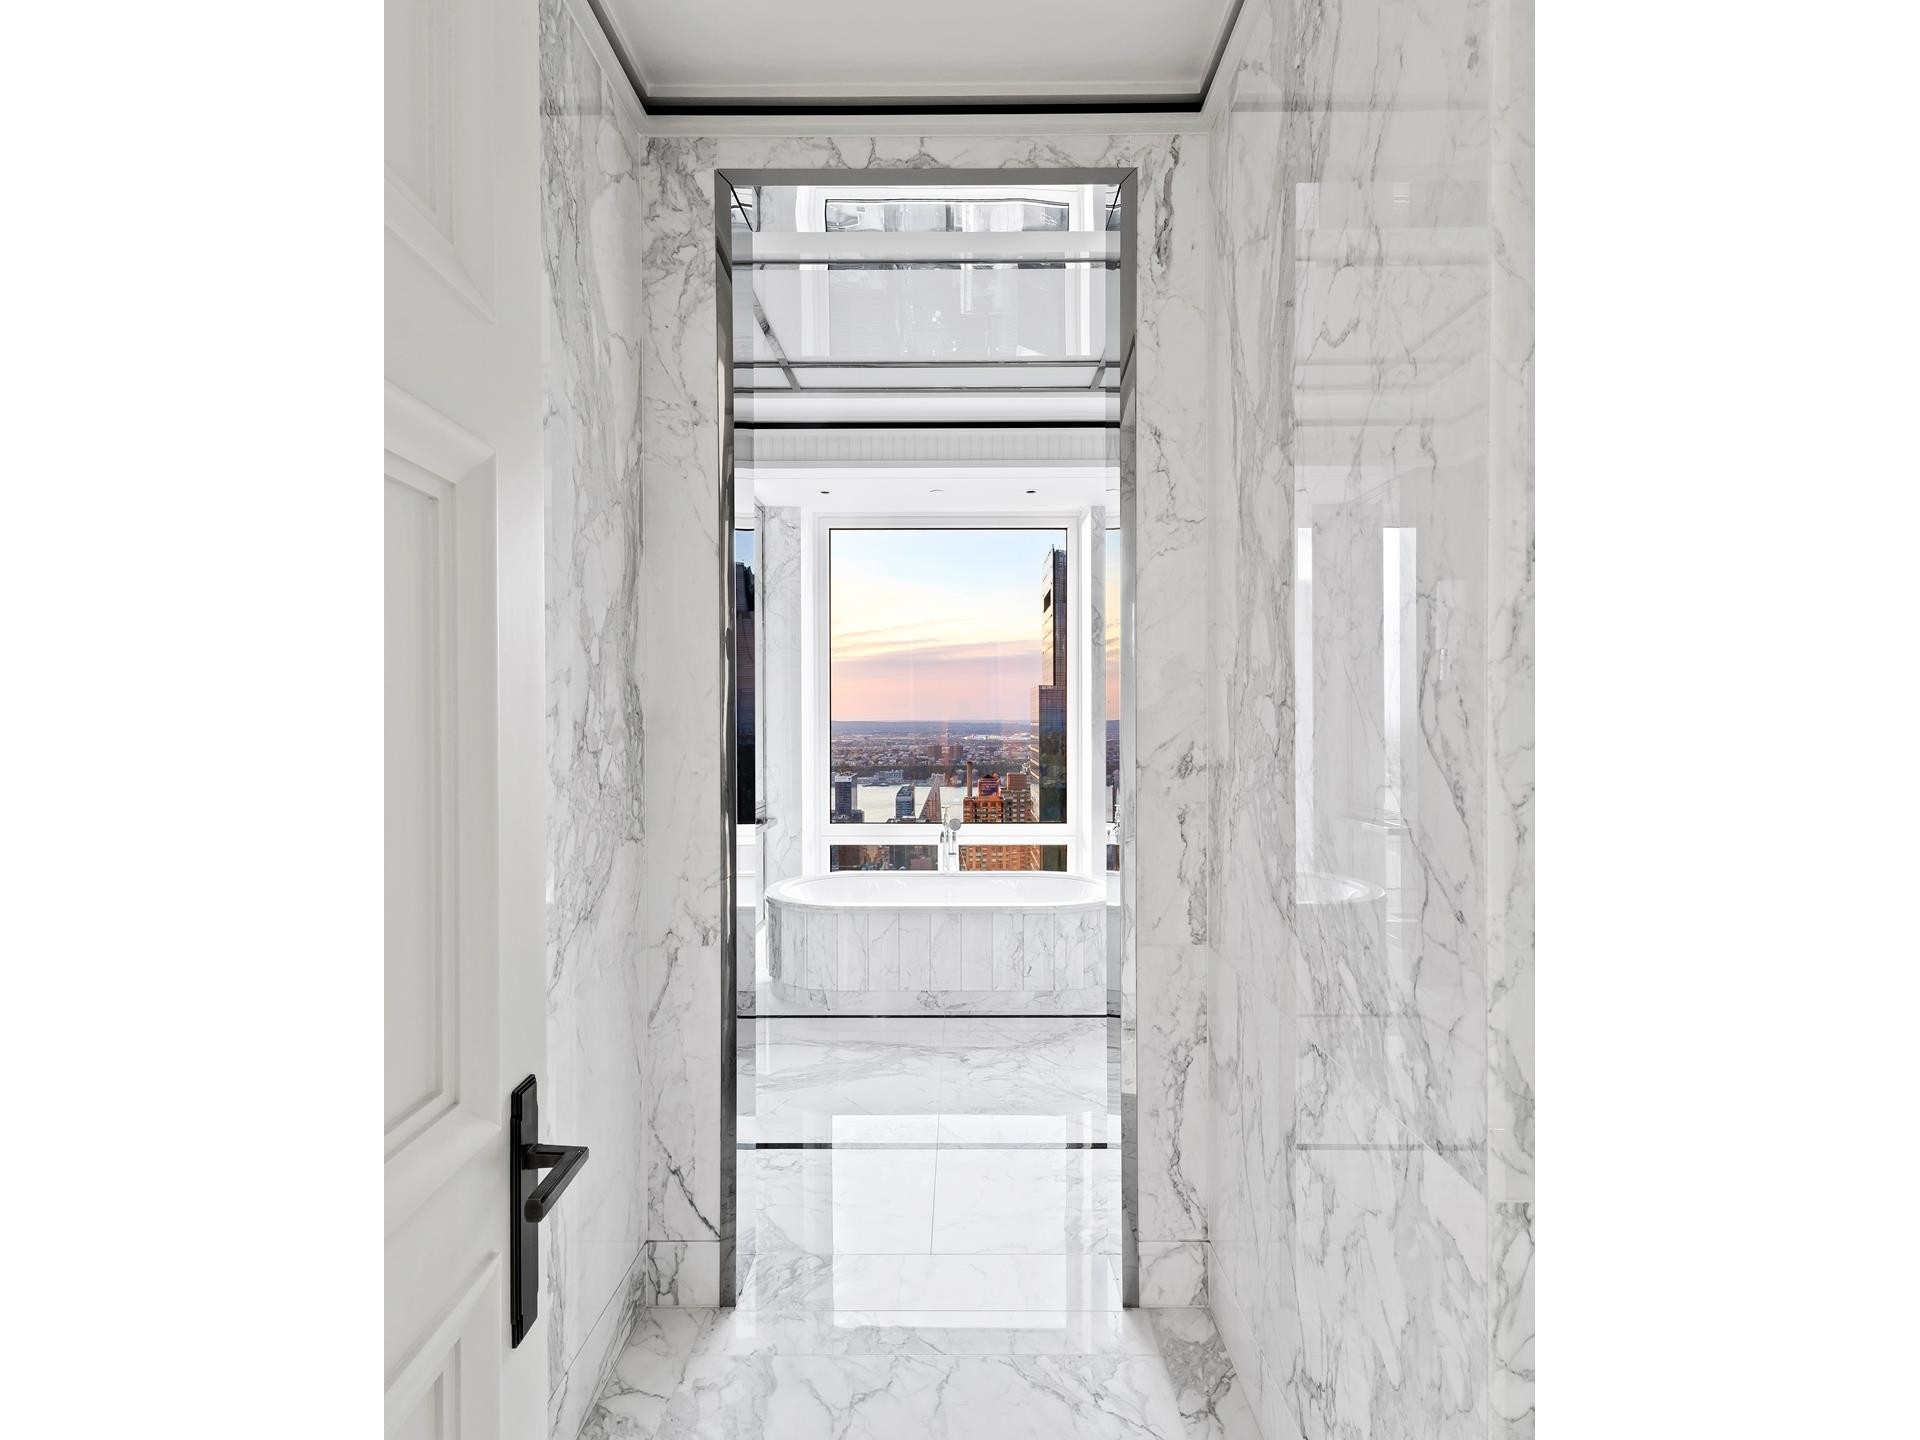 14. Condominiums for Sale at 220 CPS, 220 CENTRAL PARK S, 54/55A Central Park South, New York, NY 10019